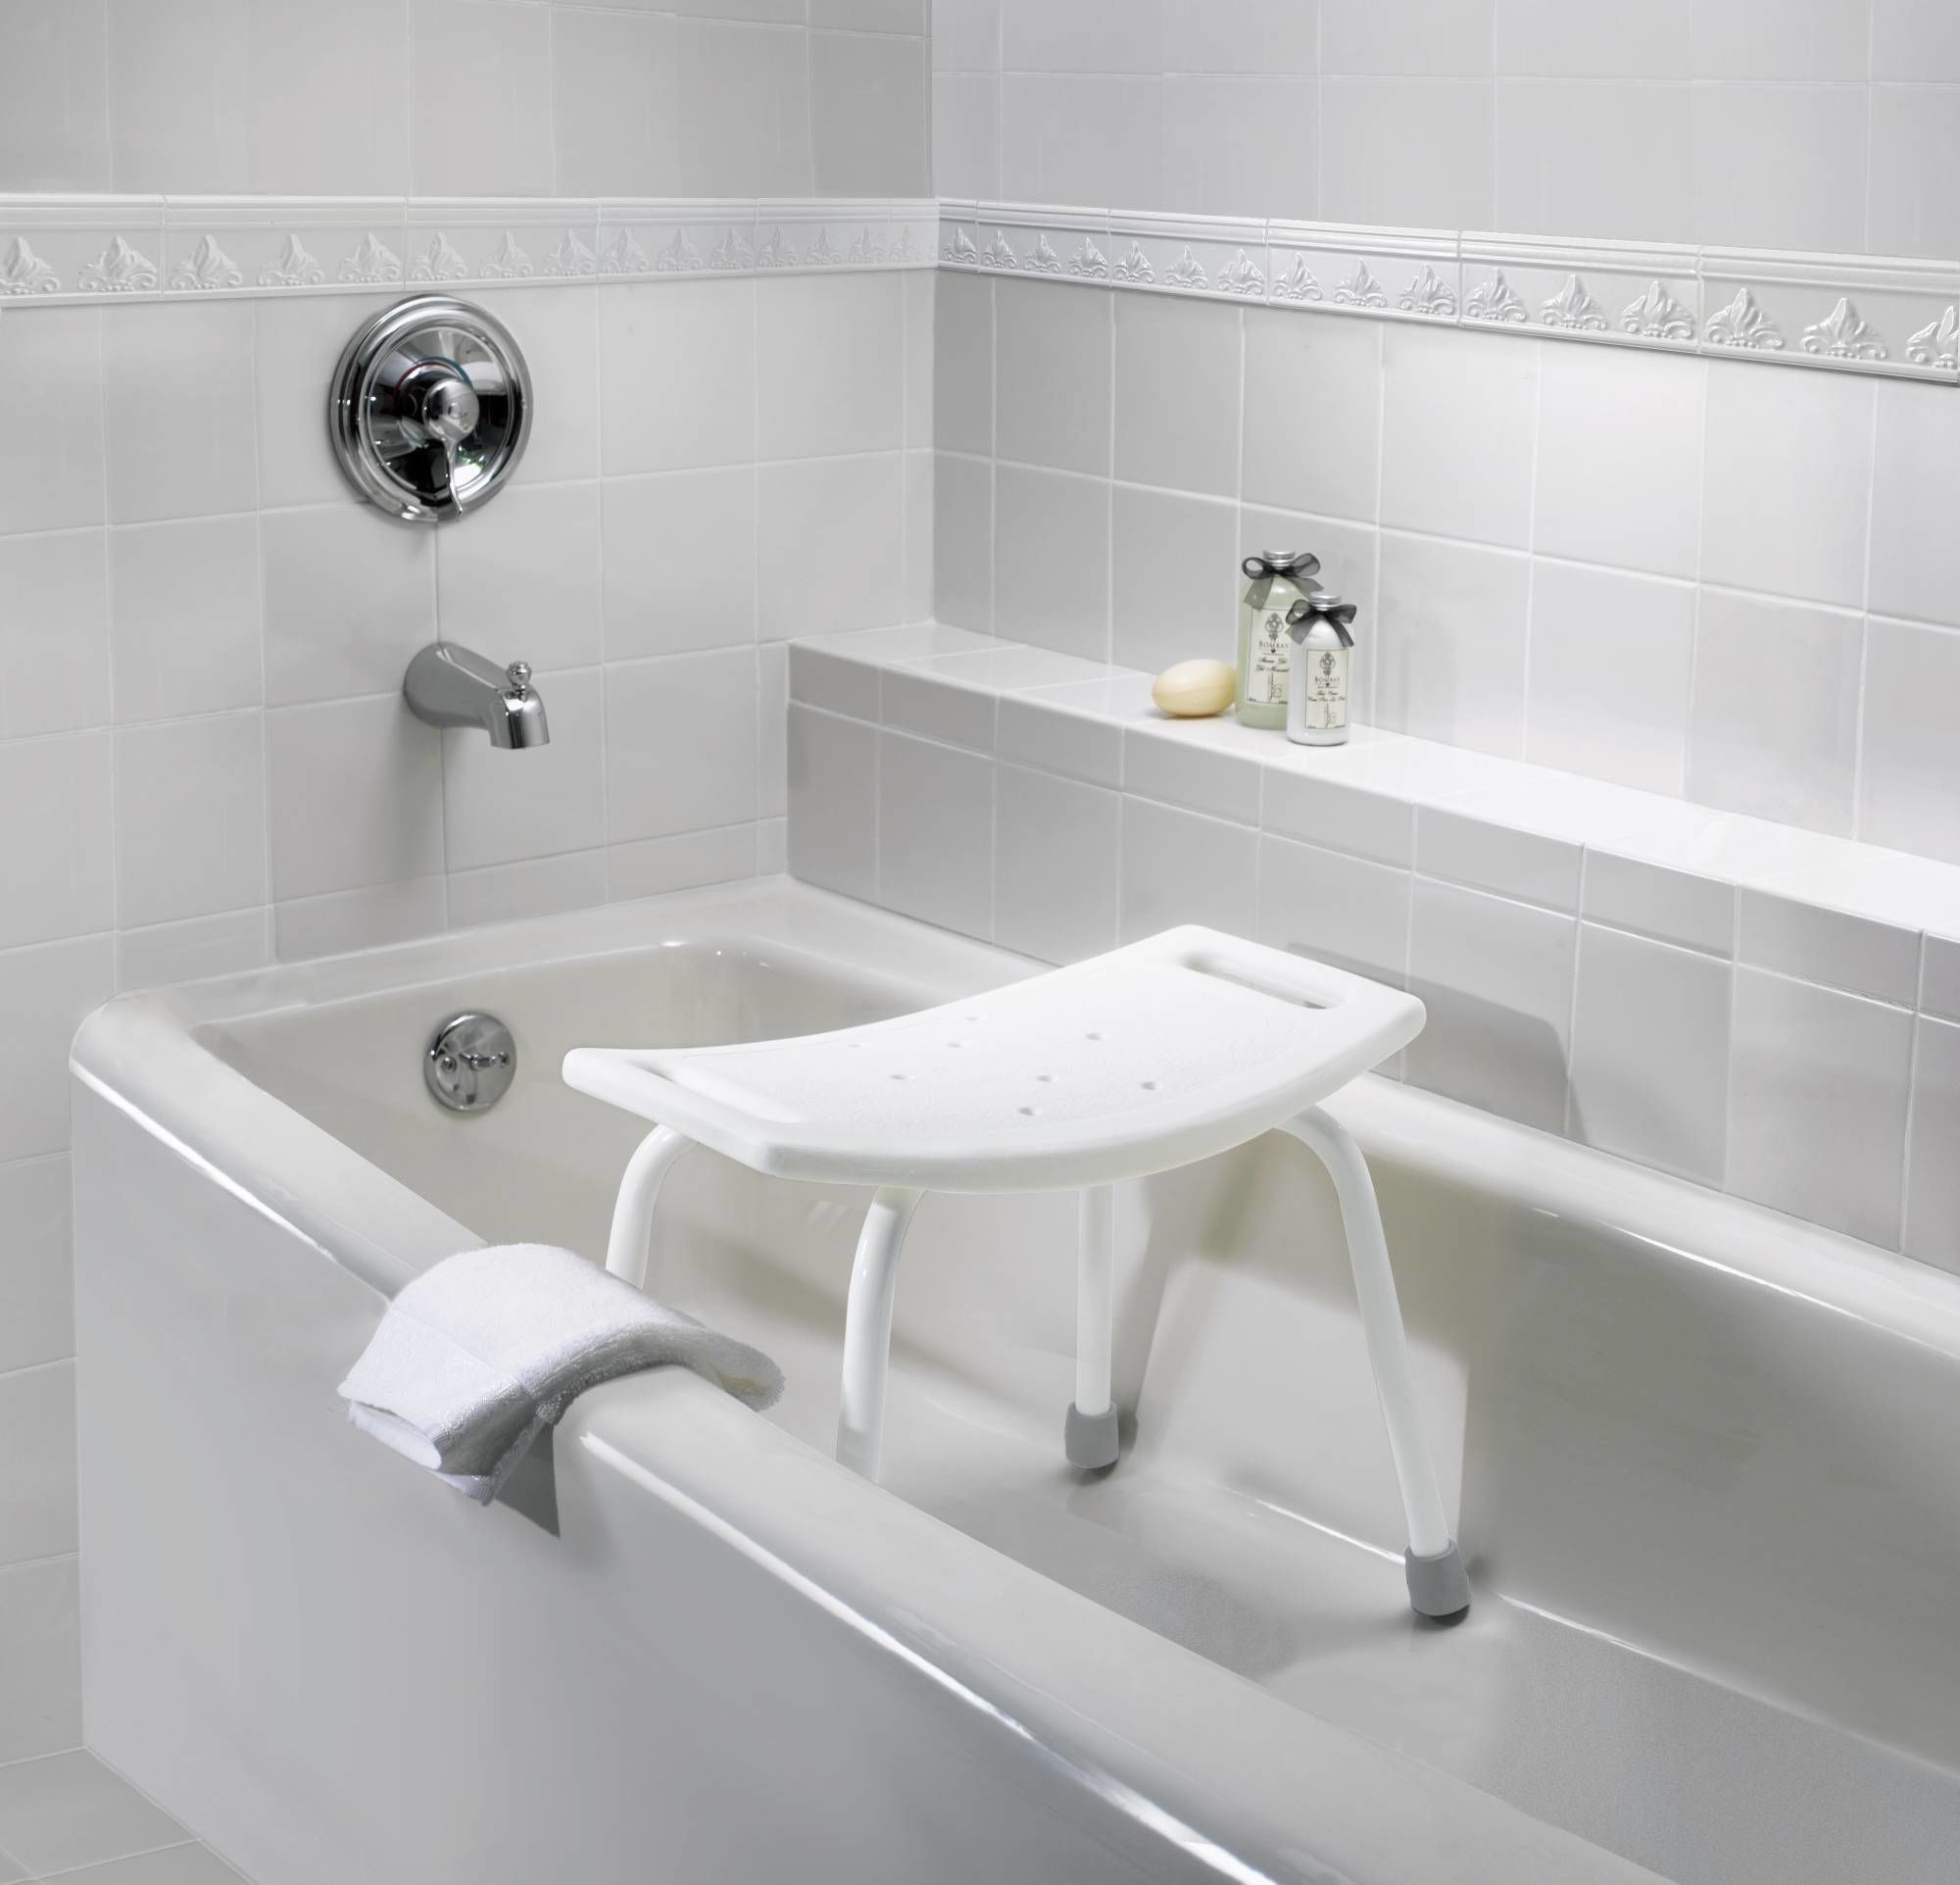 Moen CSIDN7025 Glacier Adjustable Shower Seat from the Home Care ...